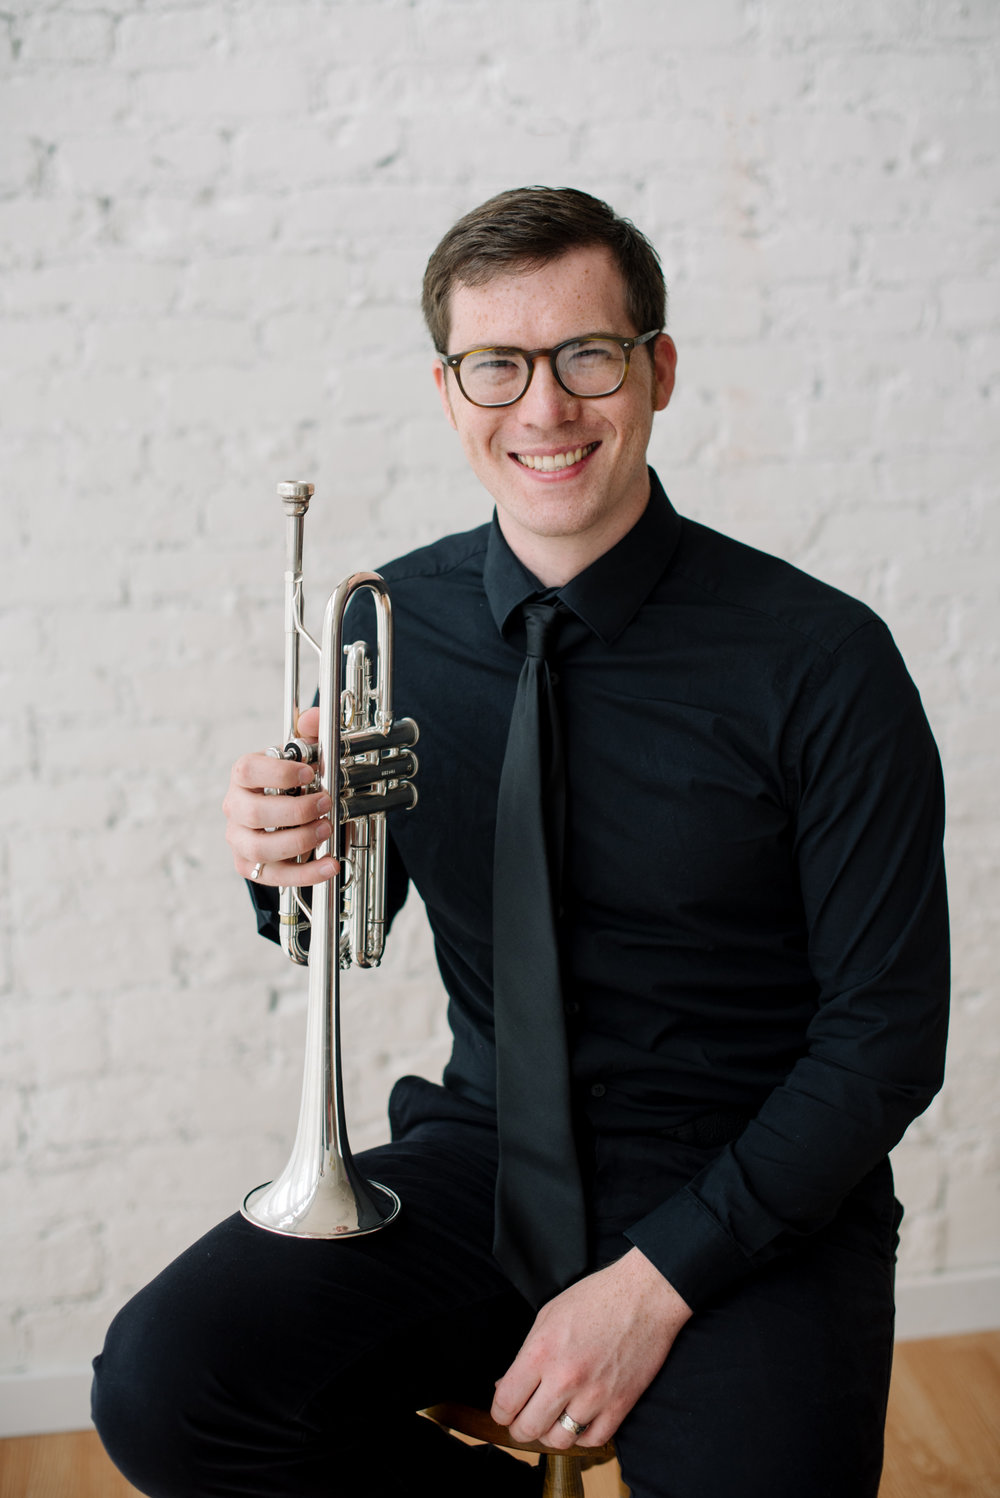 - CAMERON SWETTTRUMPETCameron Swett is the instructor of trumpet at Stivers School for the Arts in Dayton, OH. He graduated with a Bachelors in Trumpet Performance from Cedarville University, and a Masters in Trumpet Performance from the University of South Carolina. He currently freelances in the Dayton/Columbus, and regularly performs with the Dayton Philharmonic, Ashland Symphony, and Mansfield Symphony. Cameron founded his own teaching studio, Wild Note Studios, in 2016, where he teaches private trumpet and piano lessons. He is also a member of the Wild Note Jazz Quartet.